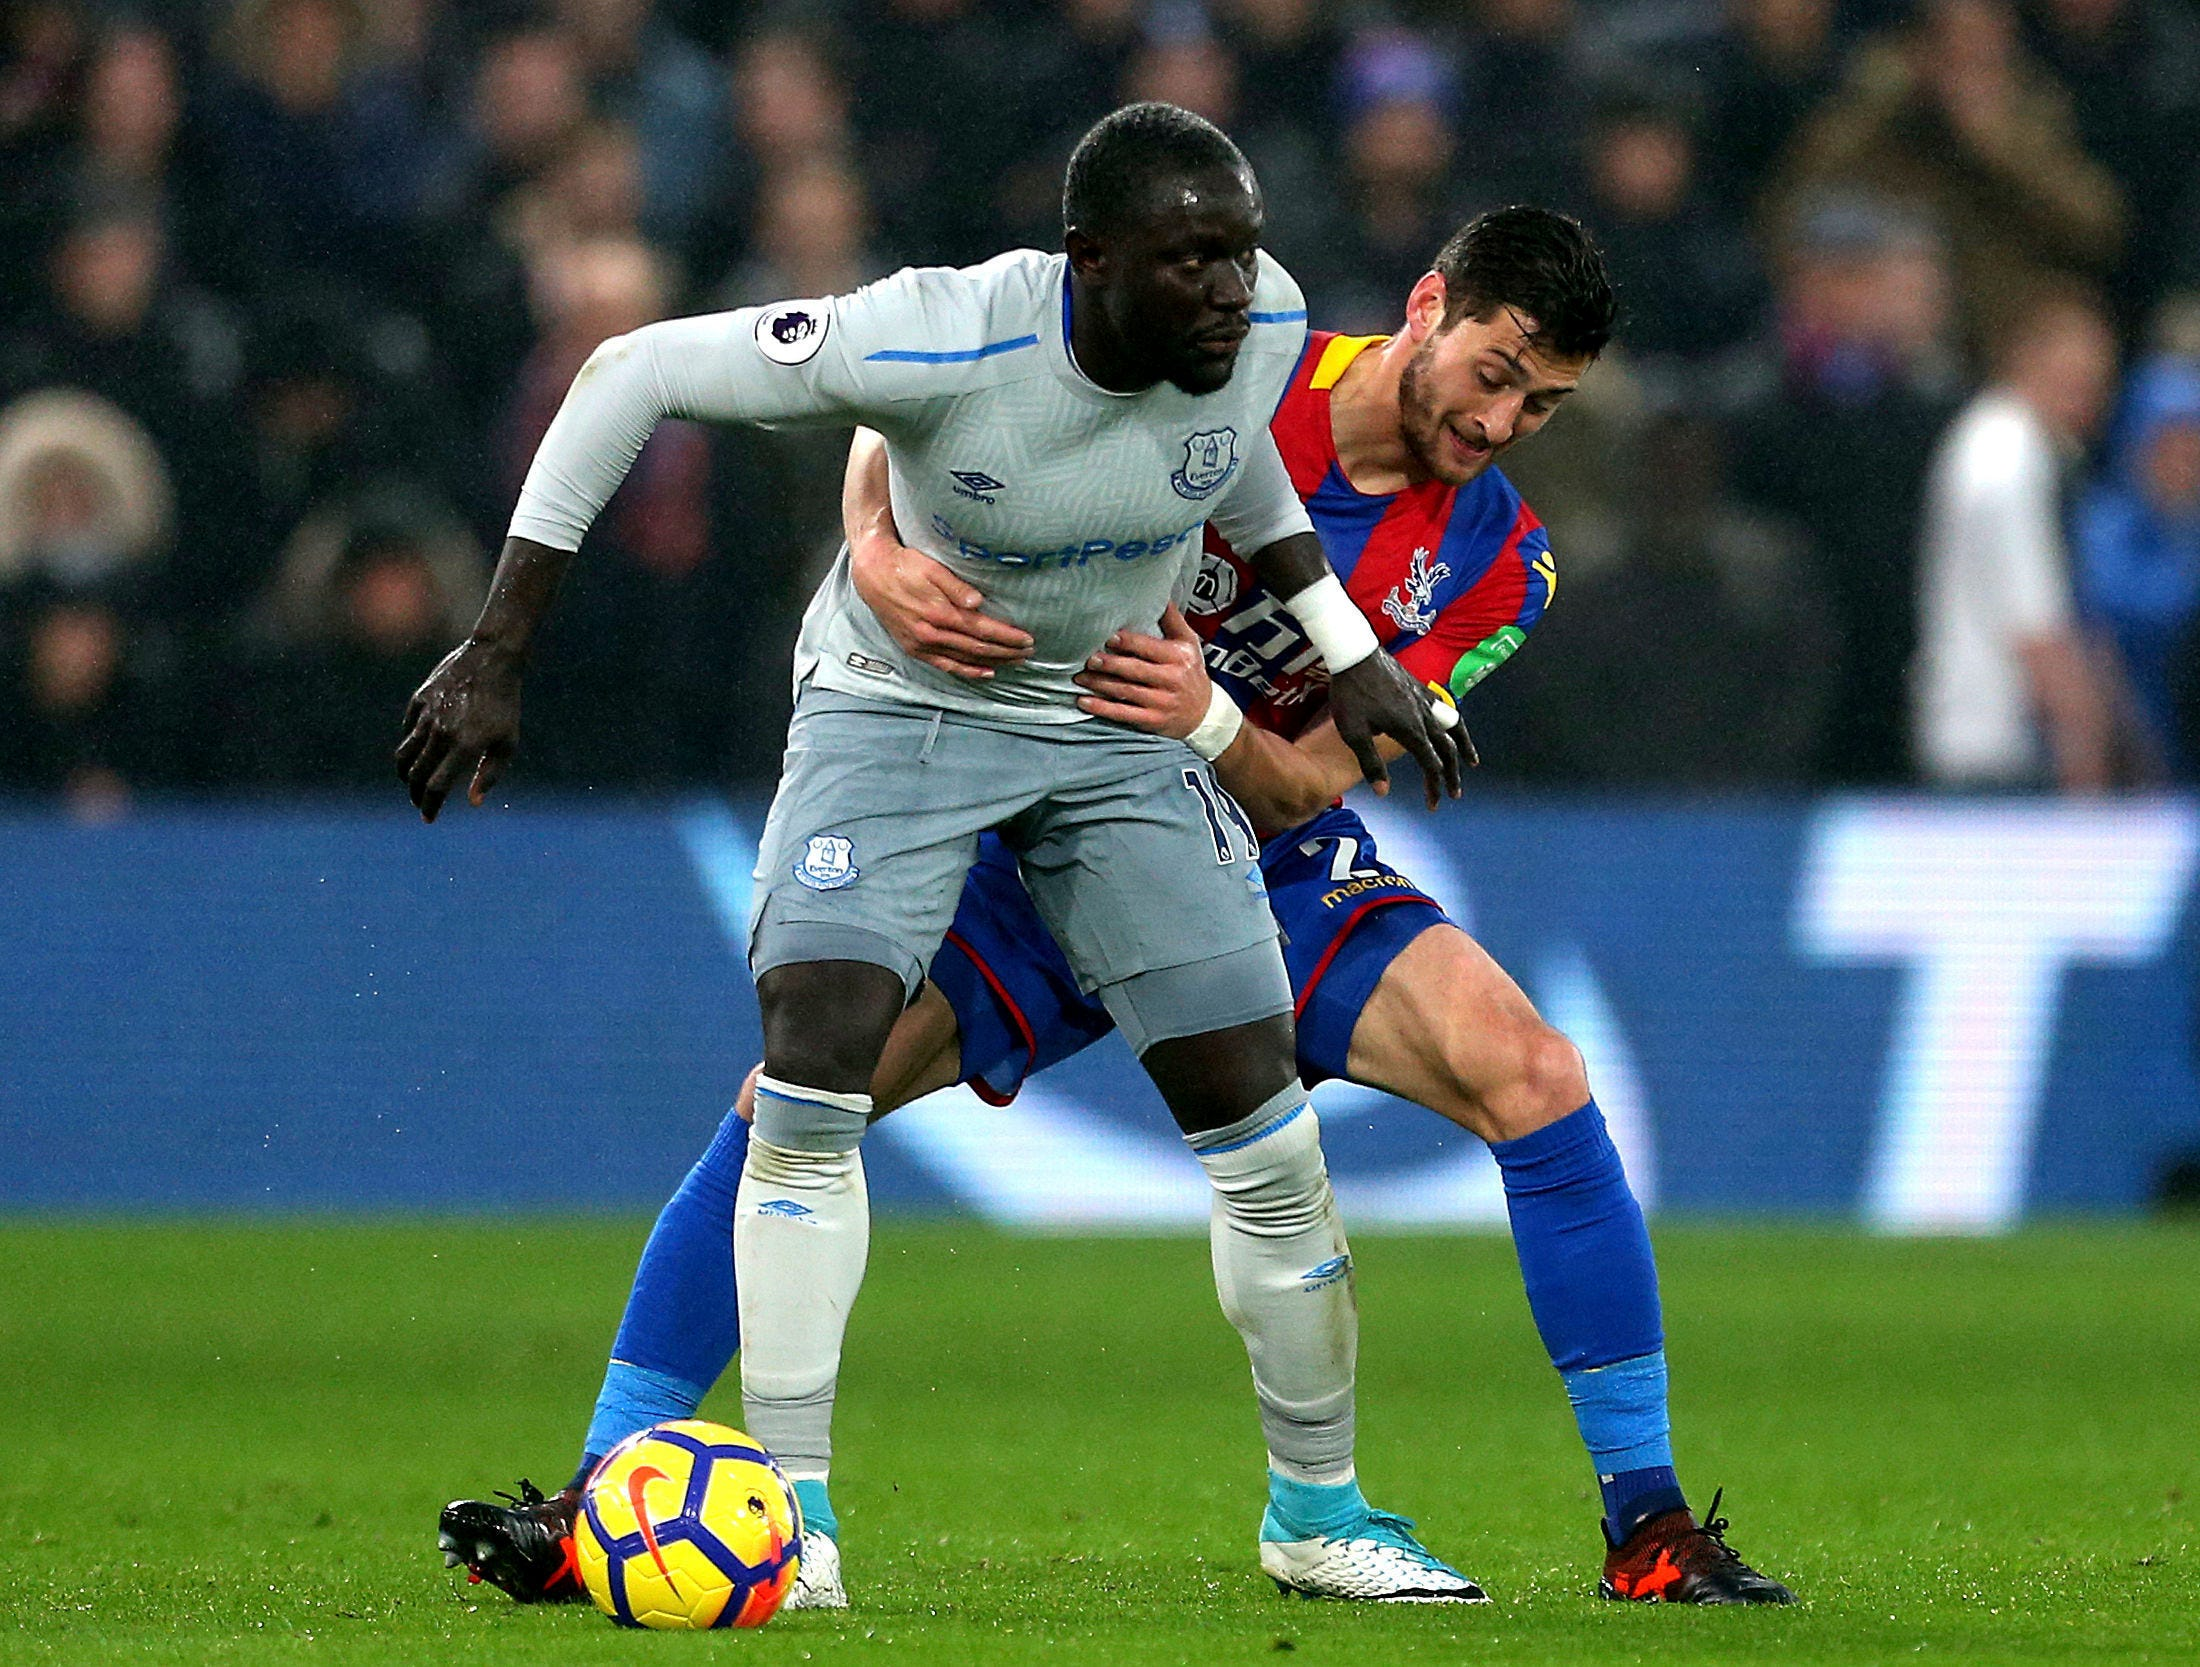 Niasse charged retrospectively for diving to win penalty